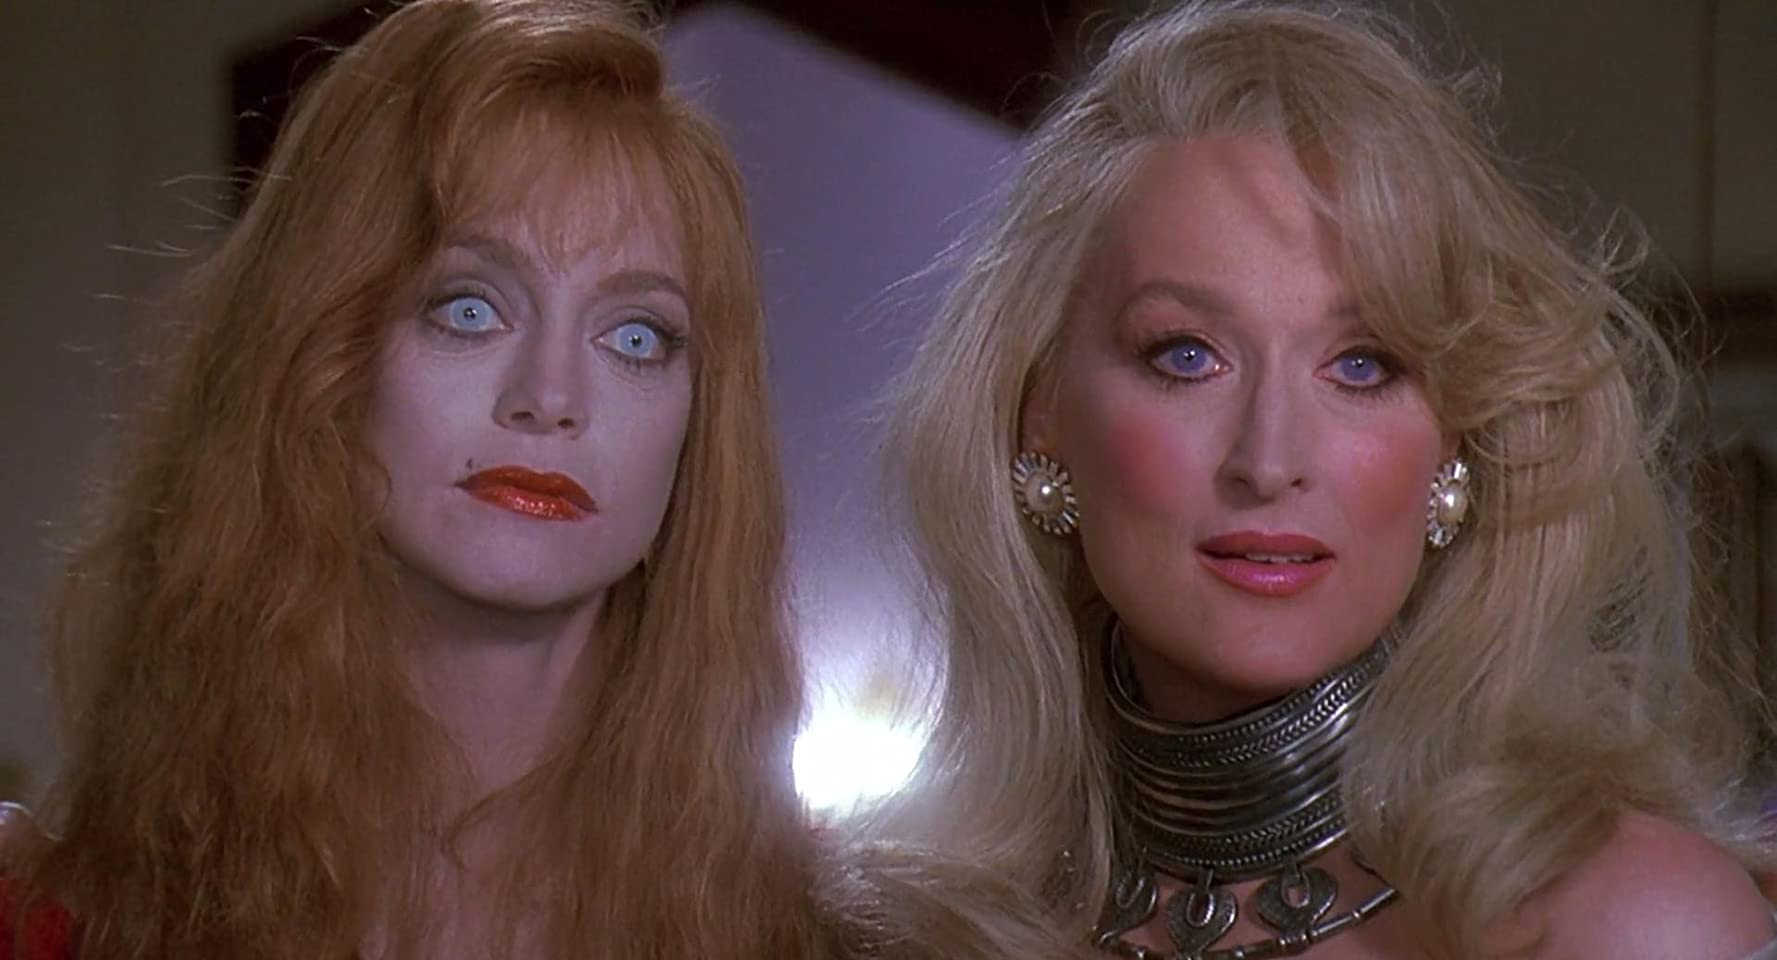 Goldie Hawn and Meryl Streep in Death Becomes Her (1992)